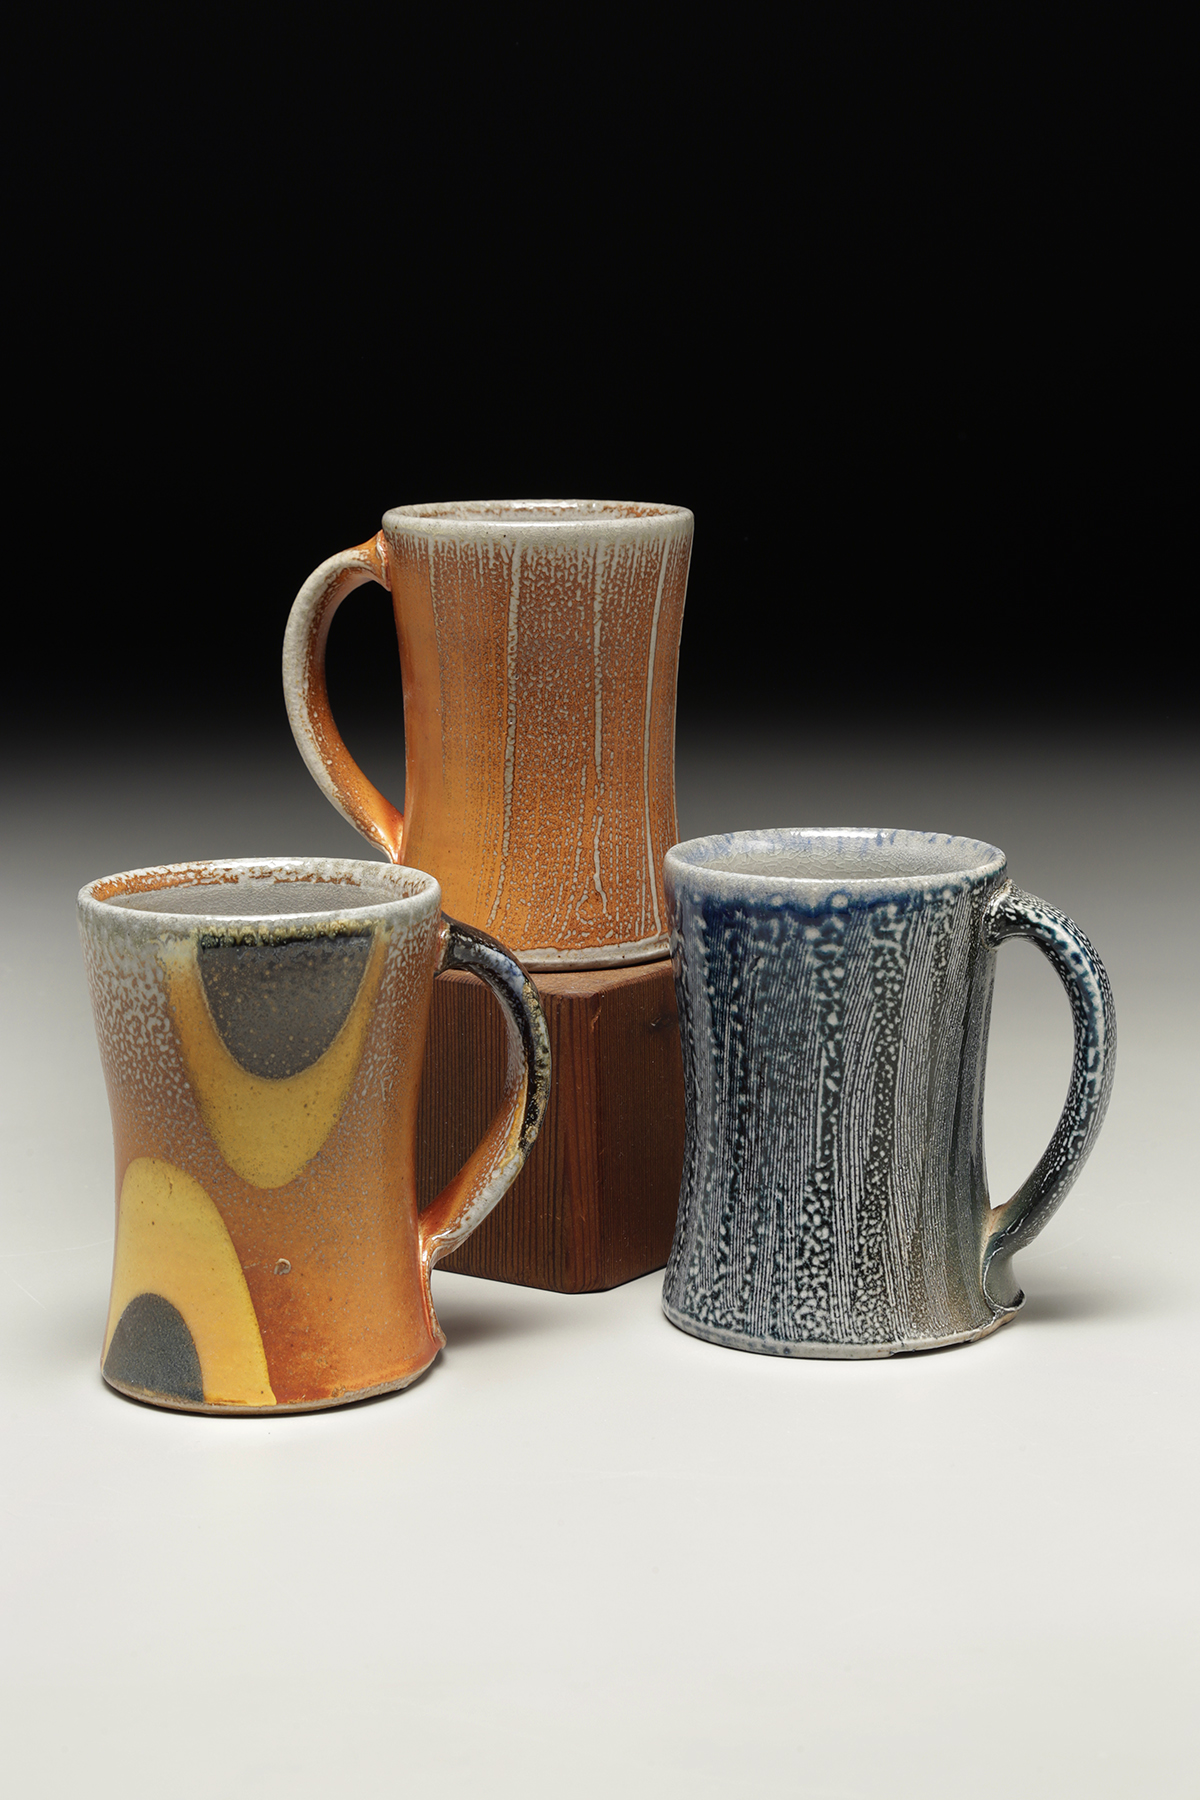 ron philbeck mugs.jpg